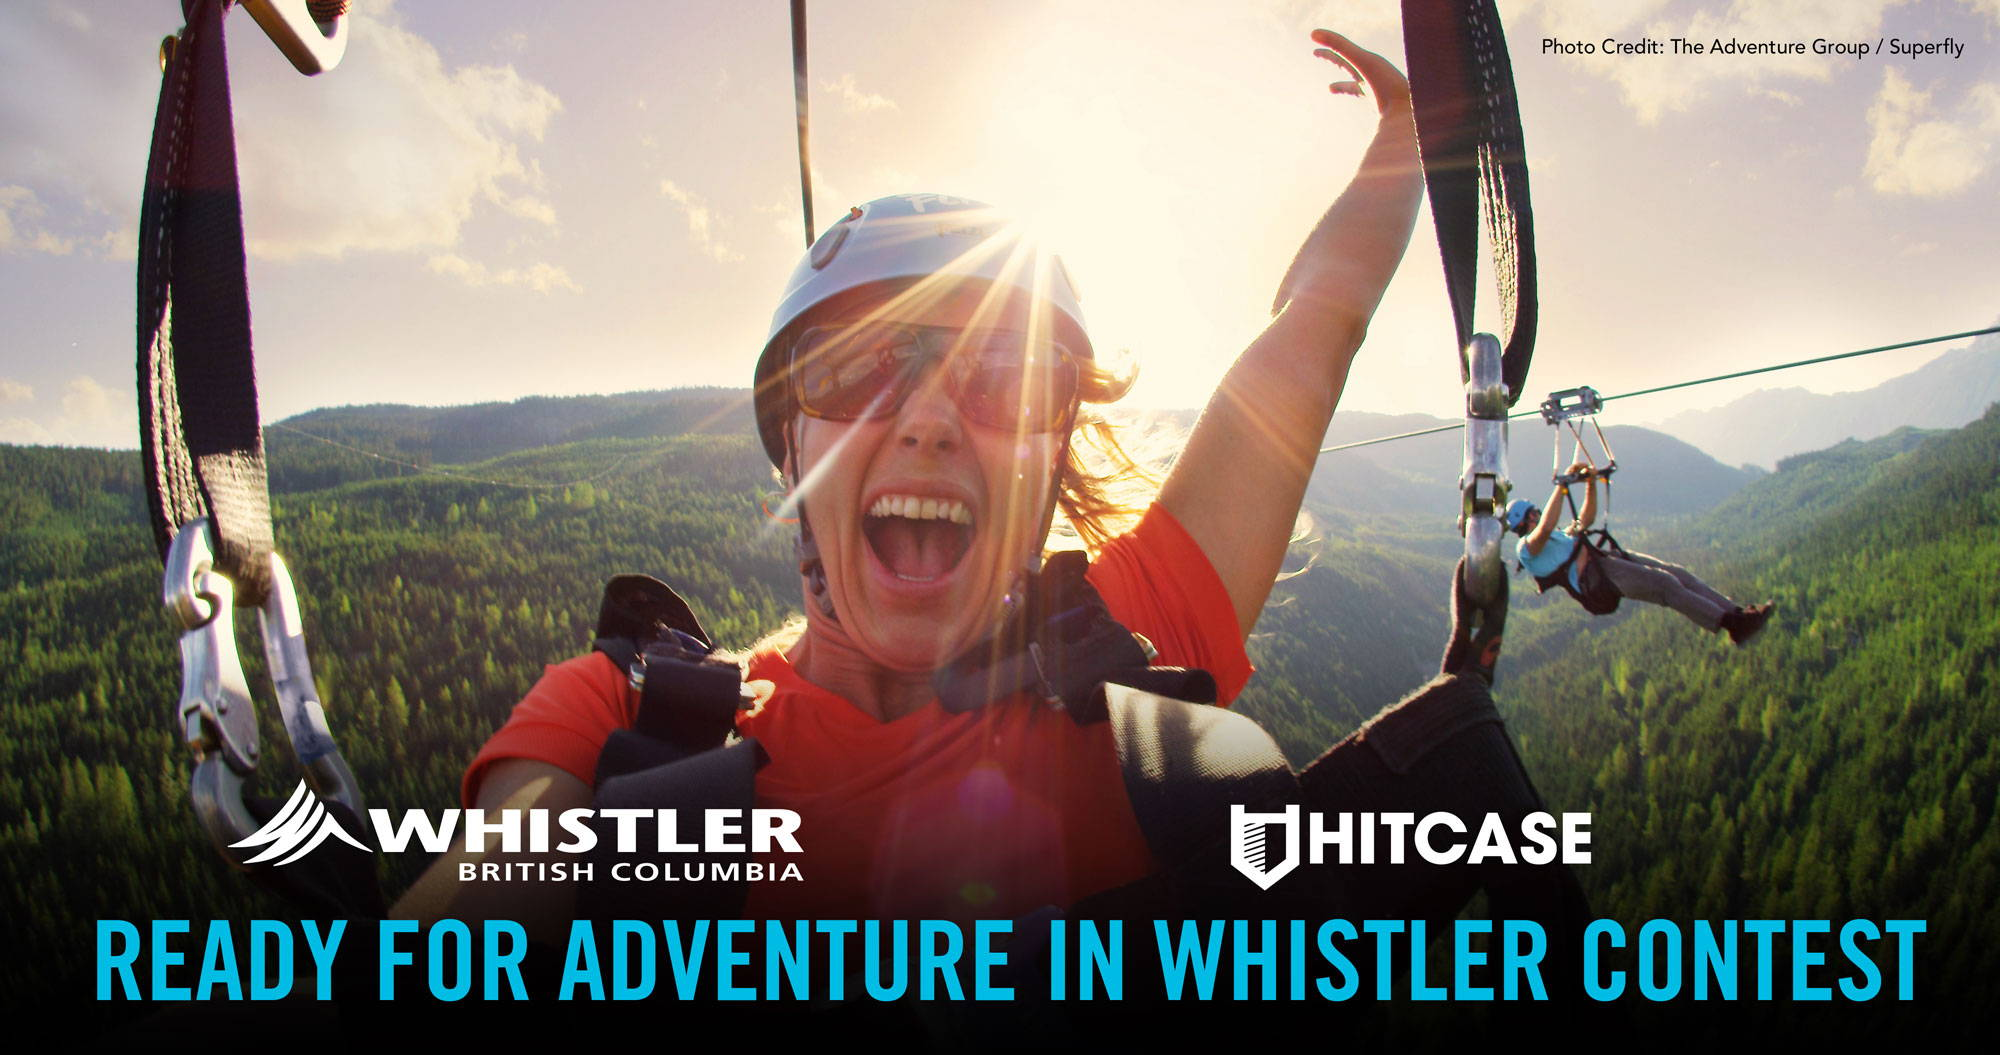 Ready for adventure in whistler contest presented by tourism whistler and hitcase